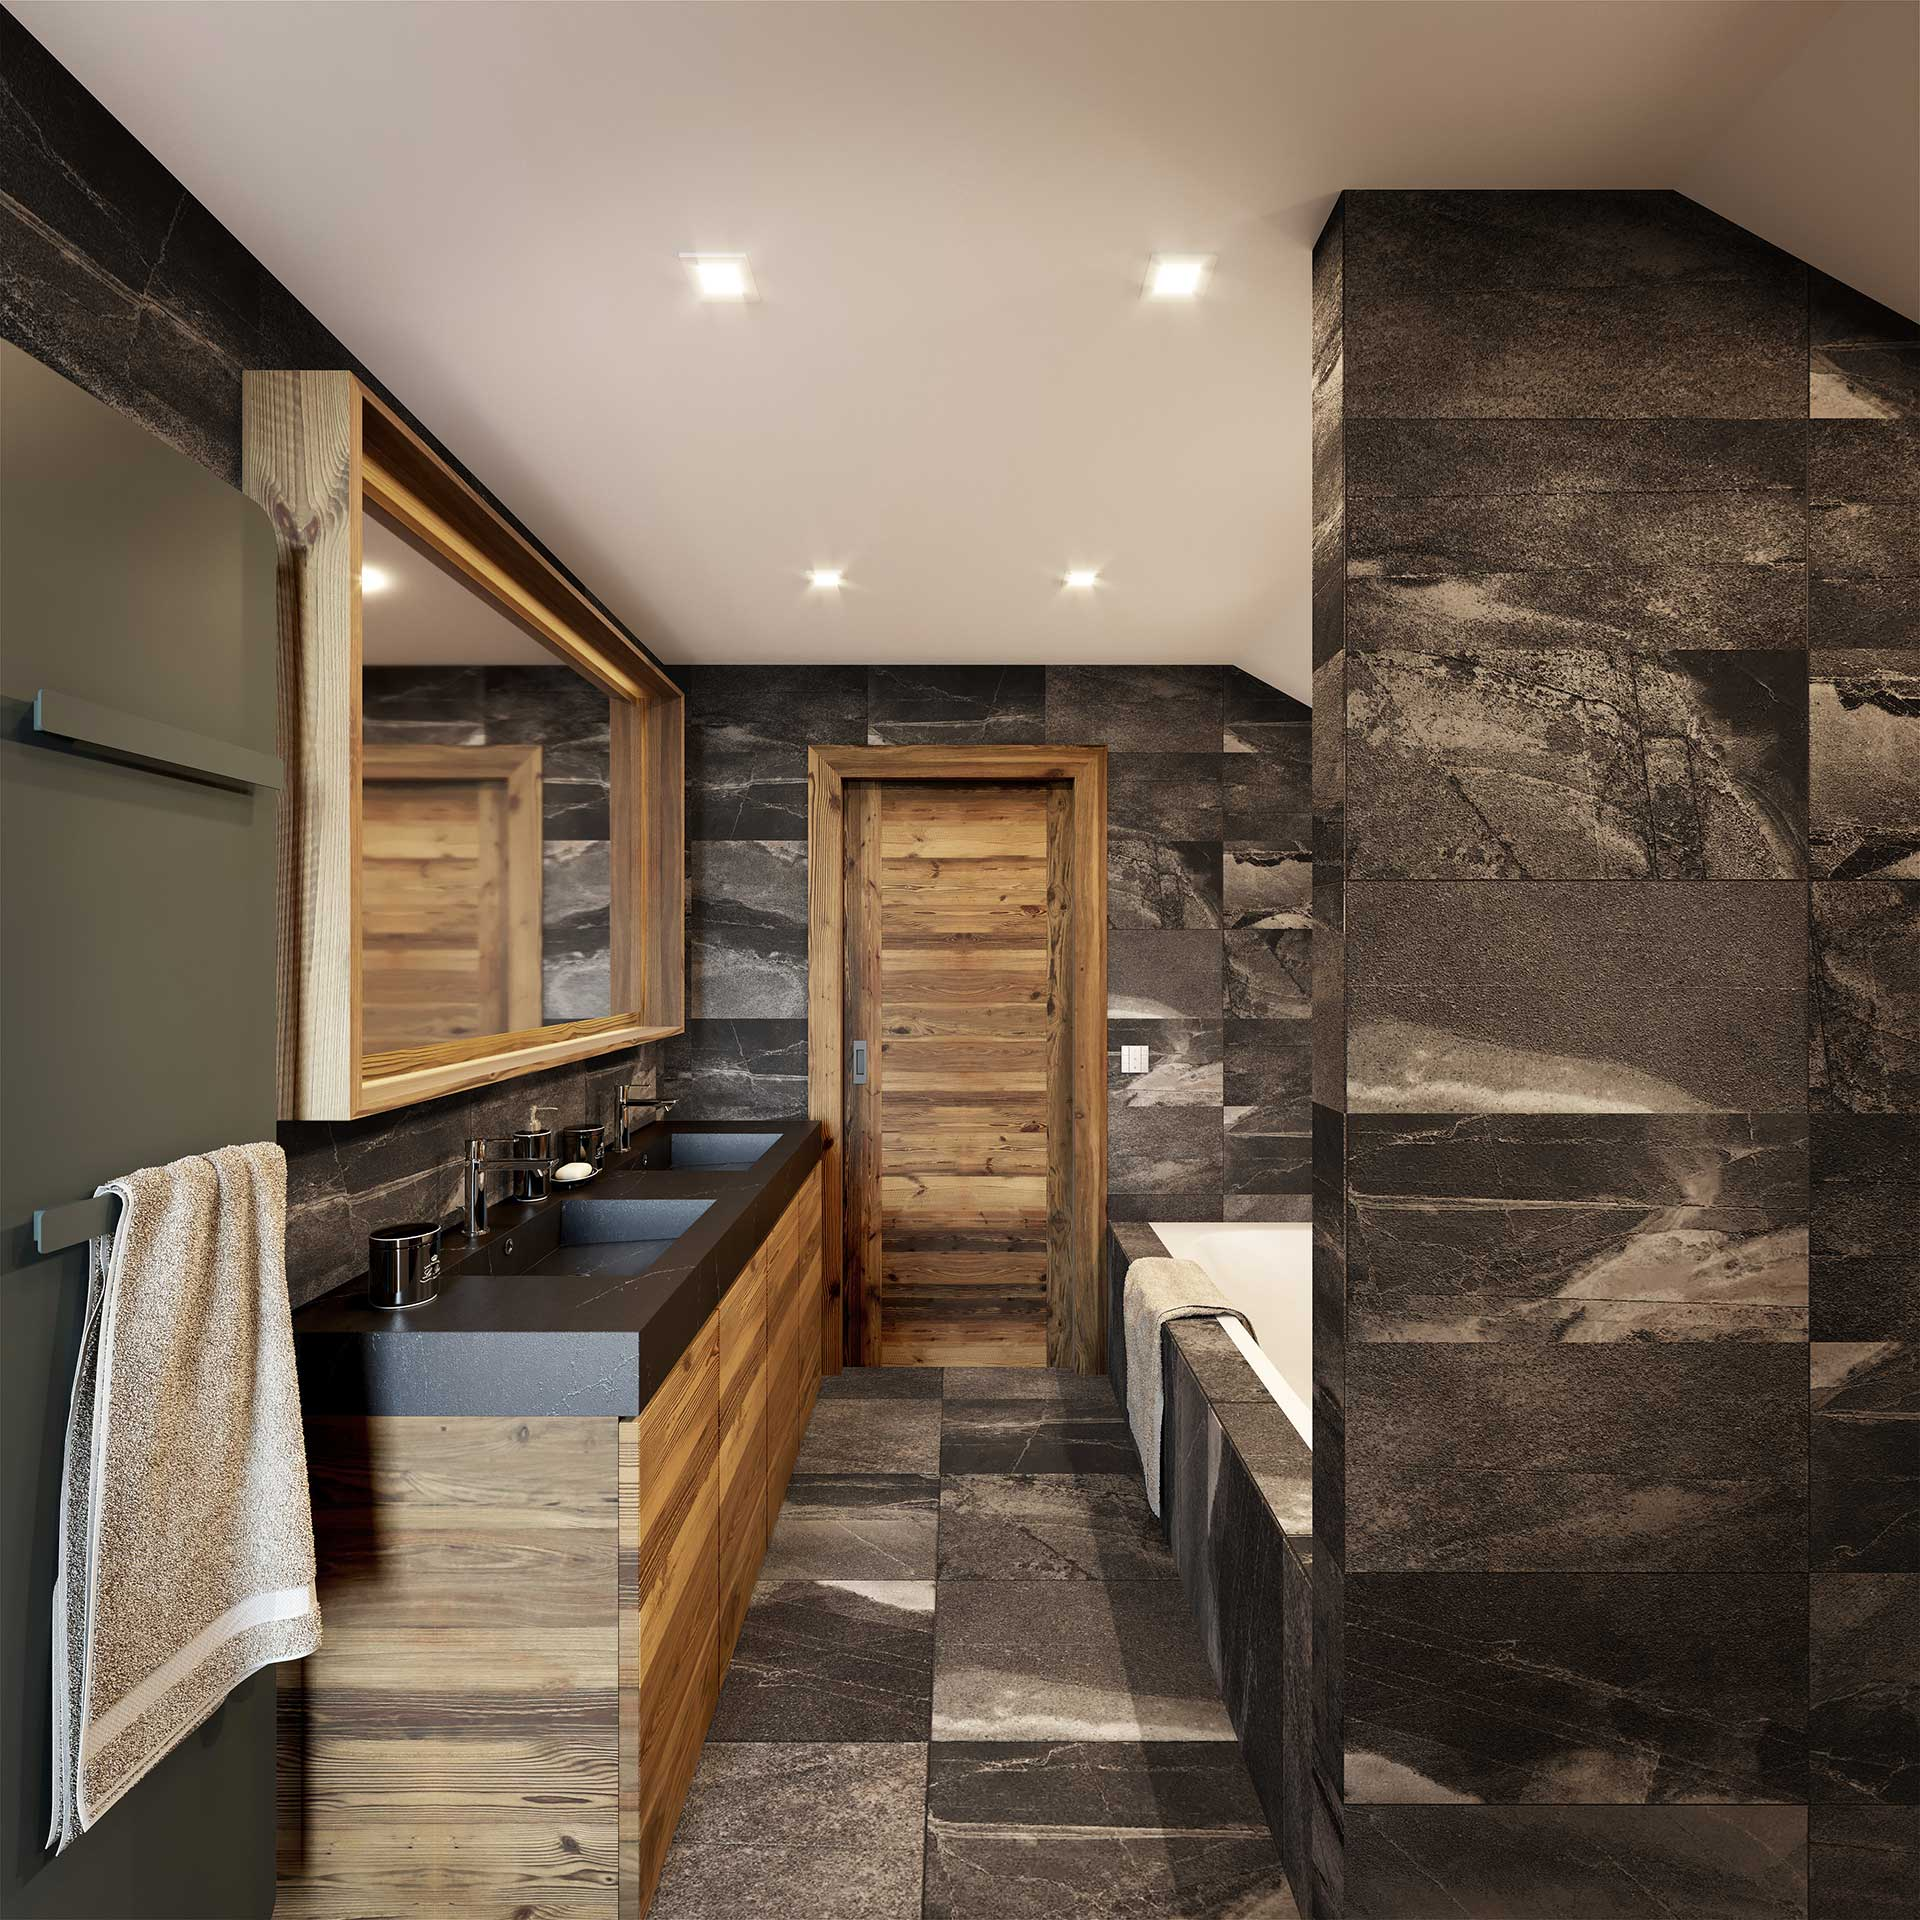 3D Perspective of a luxury chalet bathroom